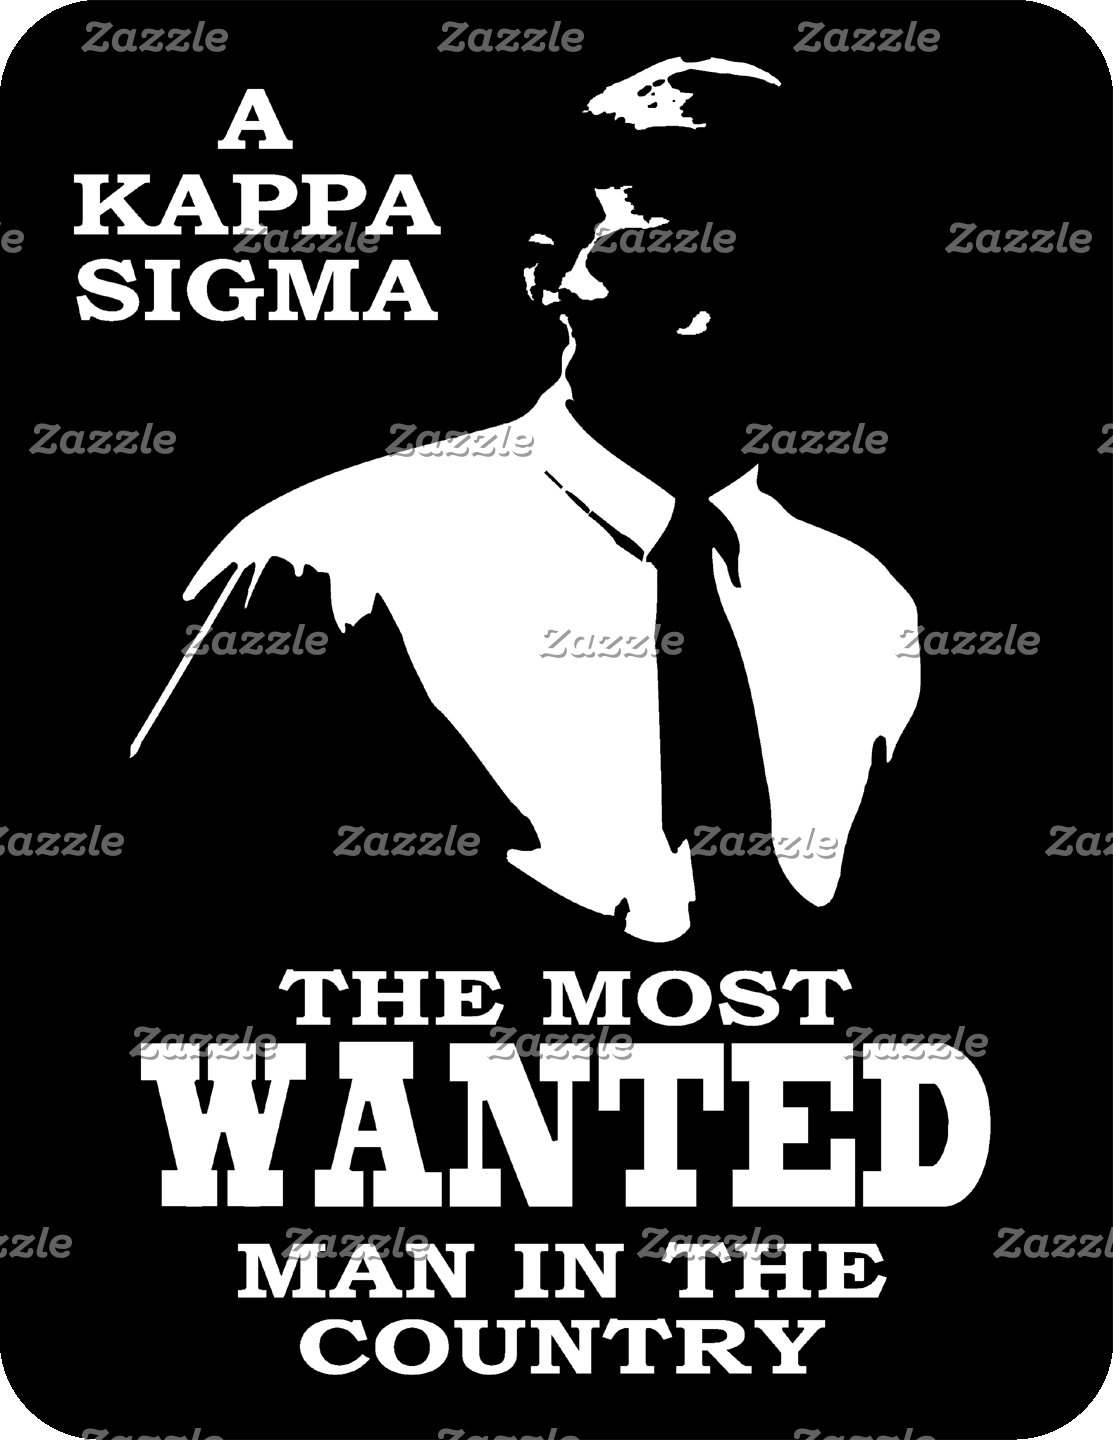 Kappa Sigma - The Most Wanted